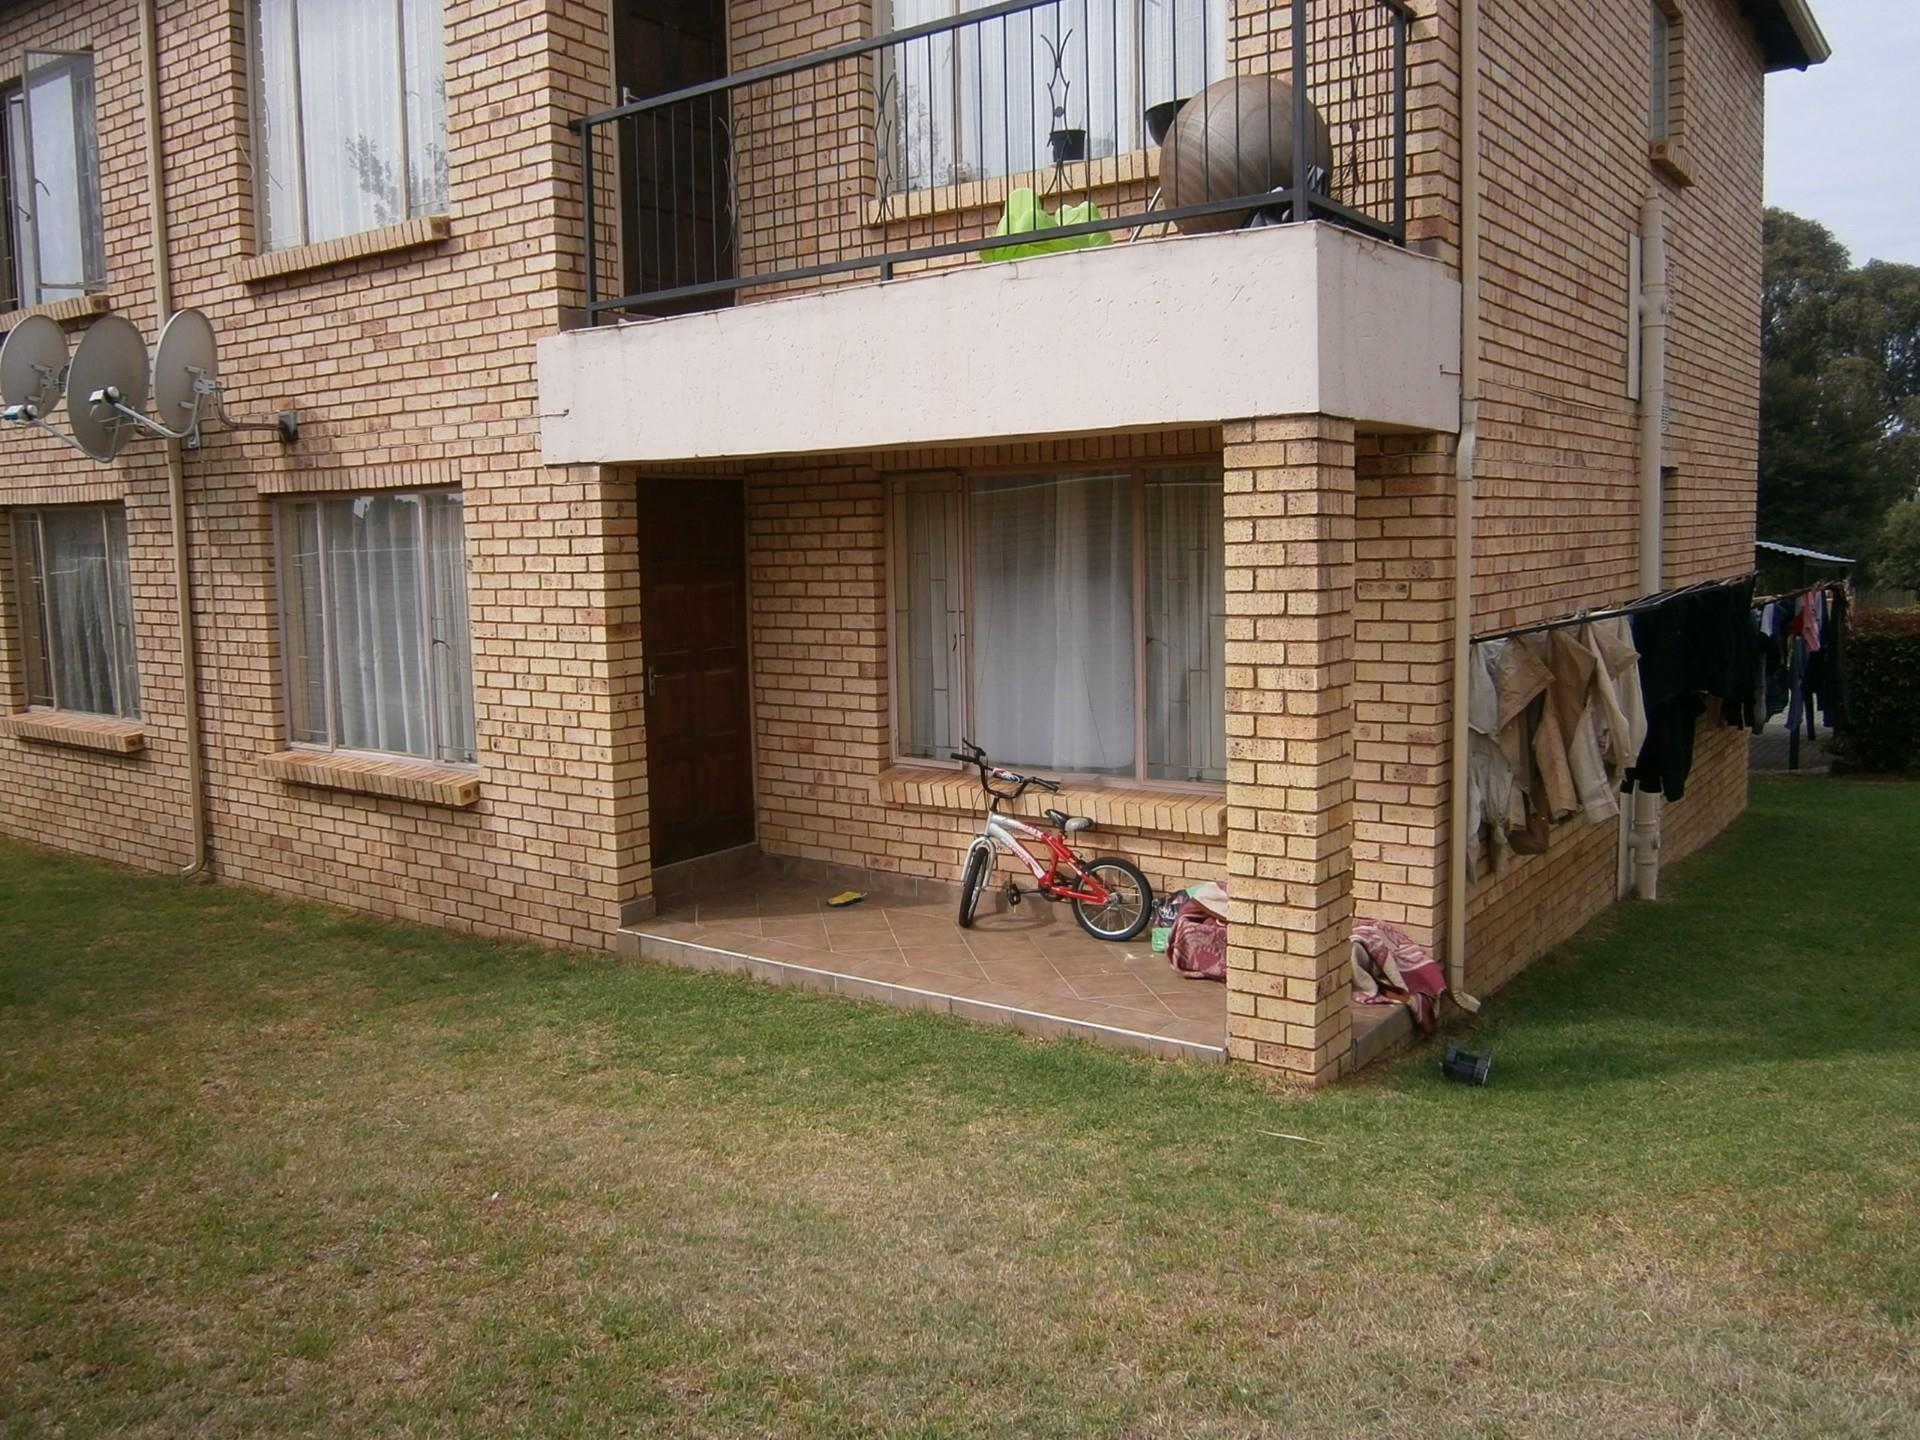 2 Bedroom Townhouse For Sale in Groblerpark